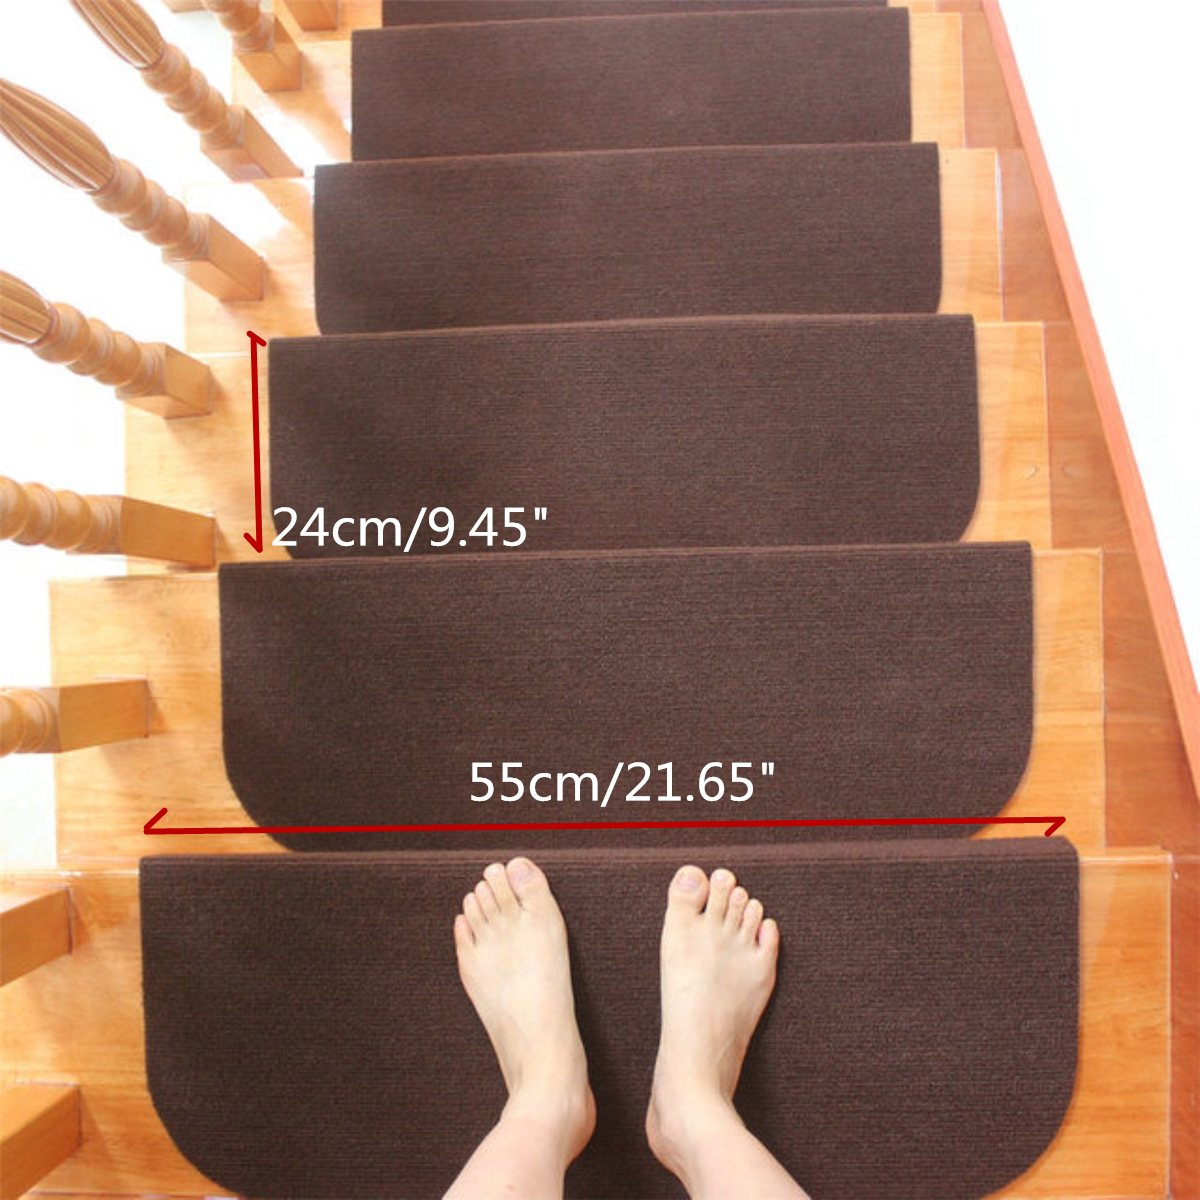 Household Door Tread Mats Non Woven Carpet Stair Non Slip PVC Bottom Step Area Pads Rug Home Textiles Decoration 2 Color 55x24cm-in Carpet from Home ... & Household Door Tread Mats Non Woven Carpet Stair Non Slip PVC Bottom ...